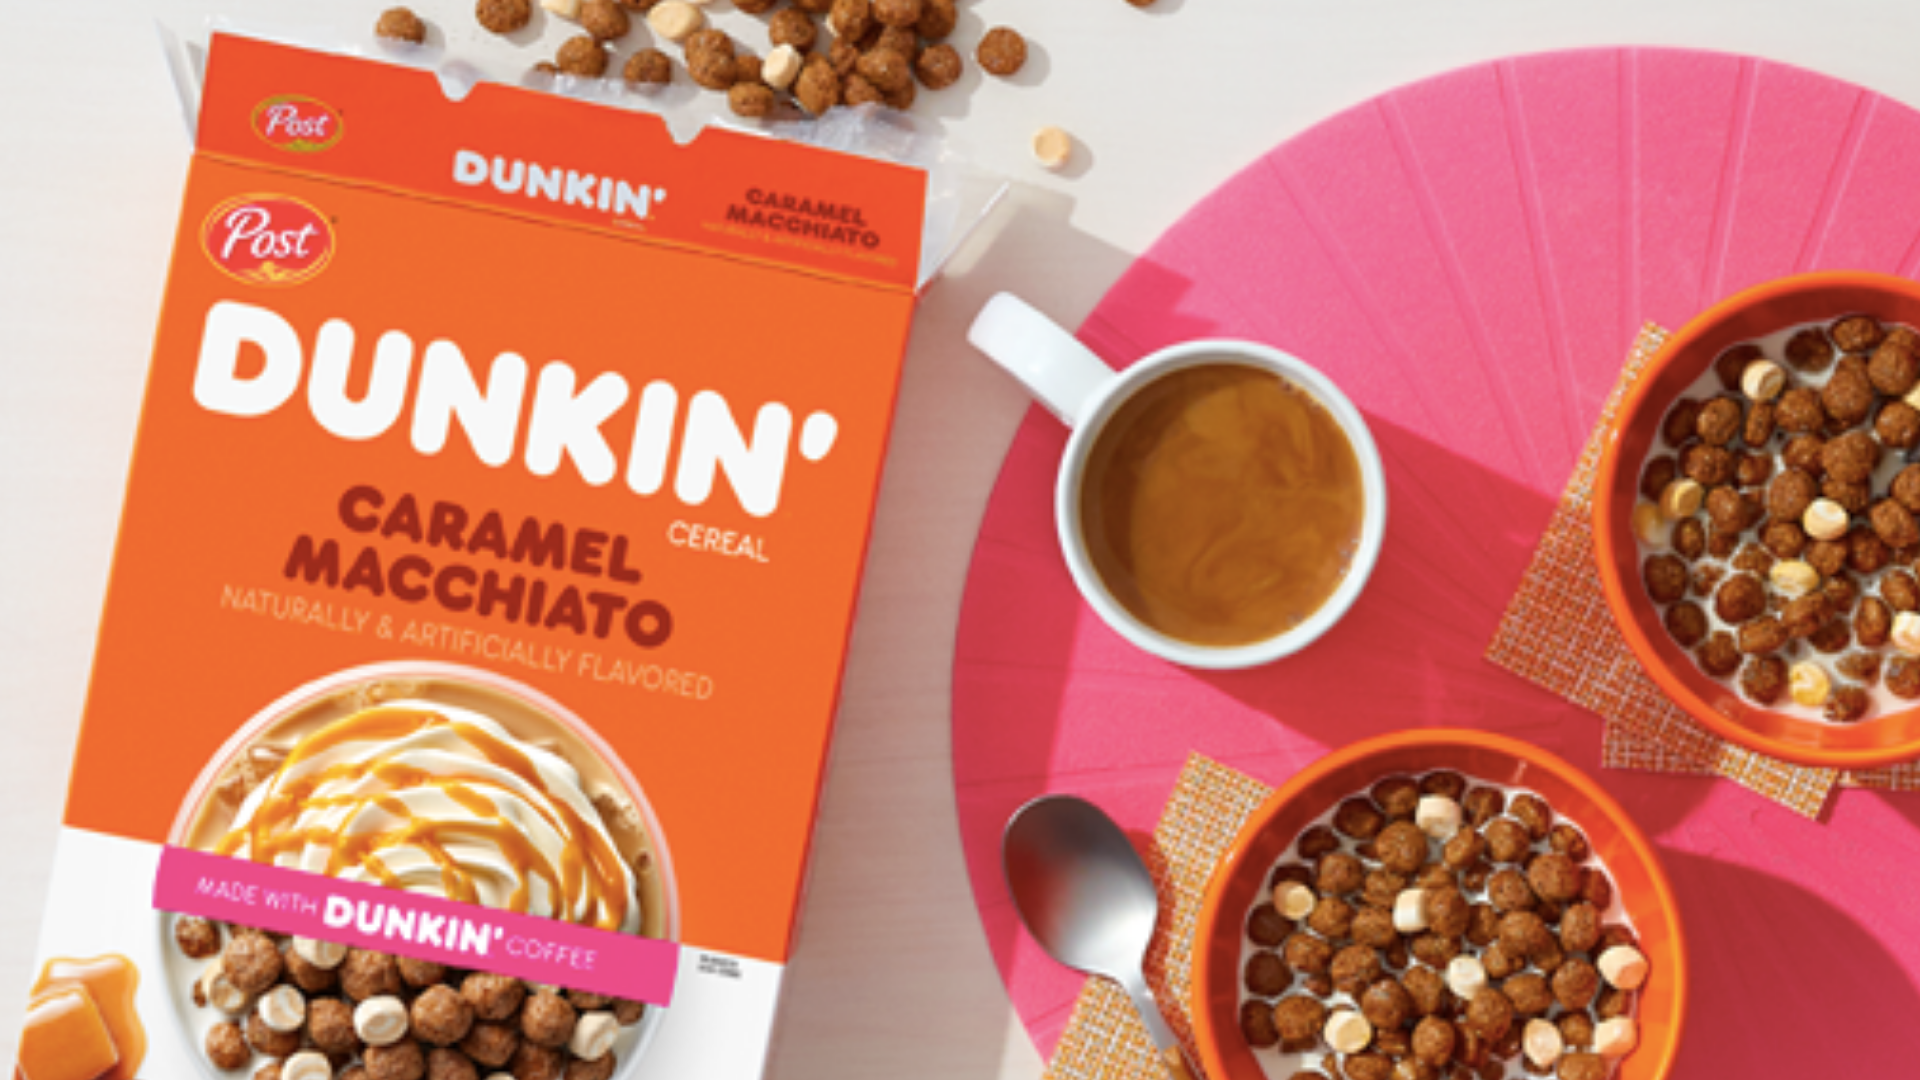 Dunkin' cereal is seen in an image from the brand's website in August 2020.